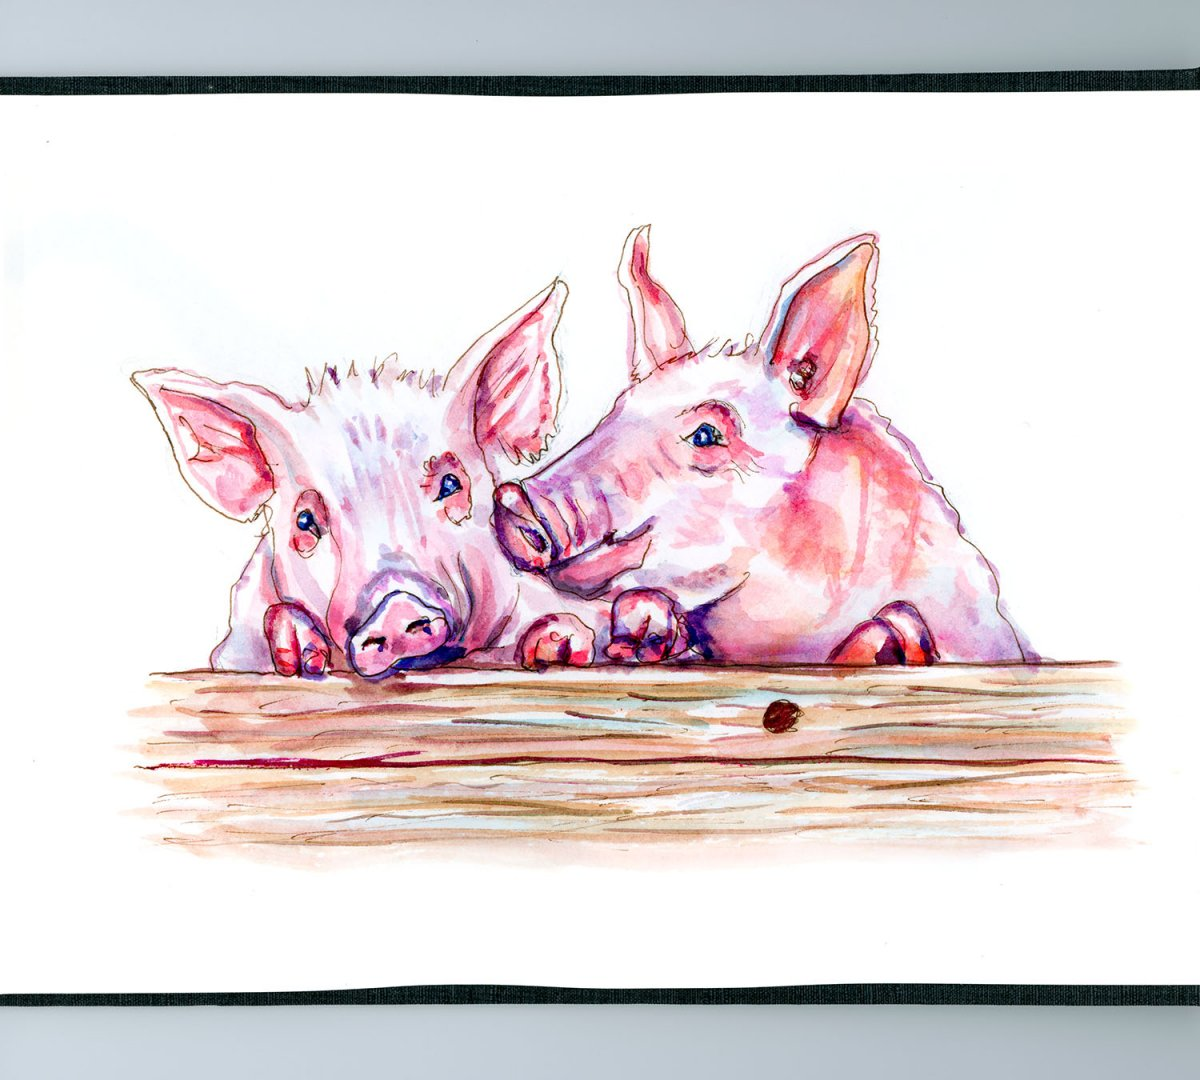 Day 25 - World Watercolor Month Farm Life Pigs - Doodlewash